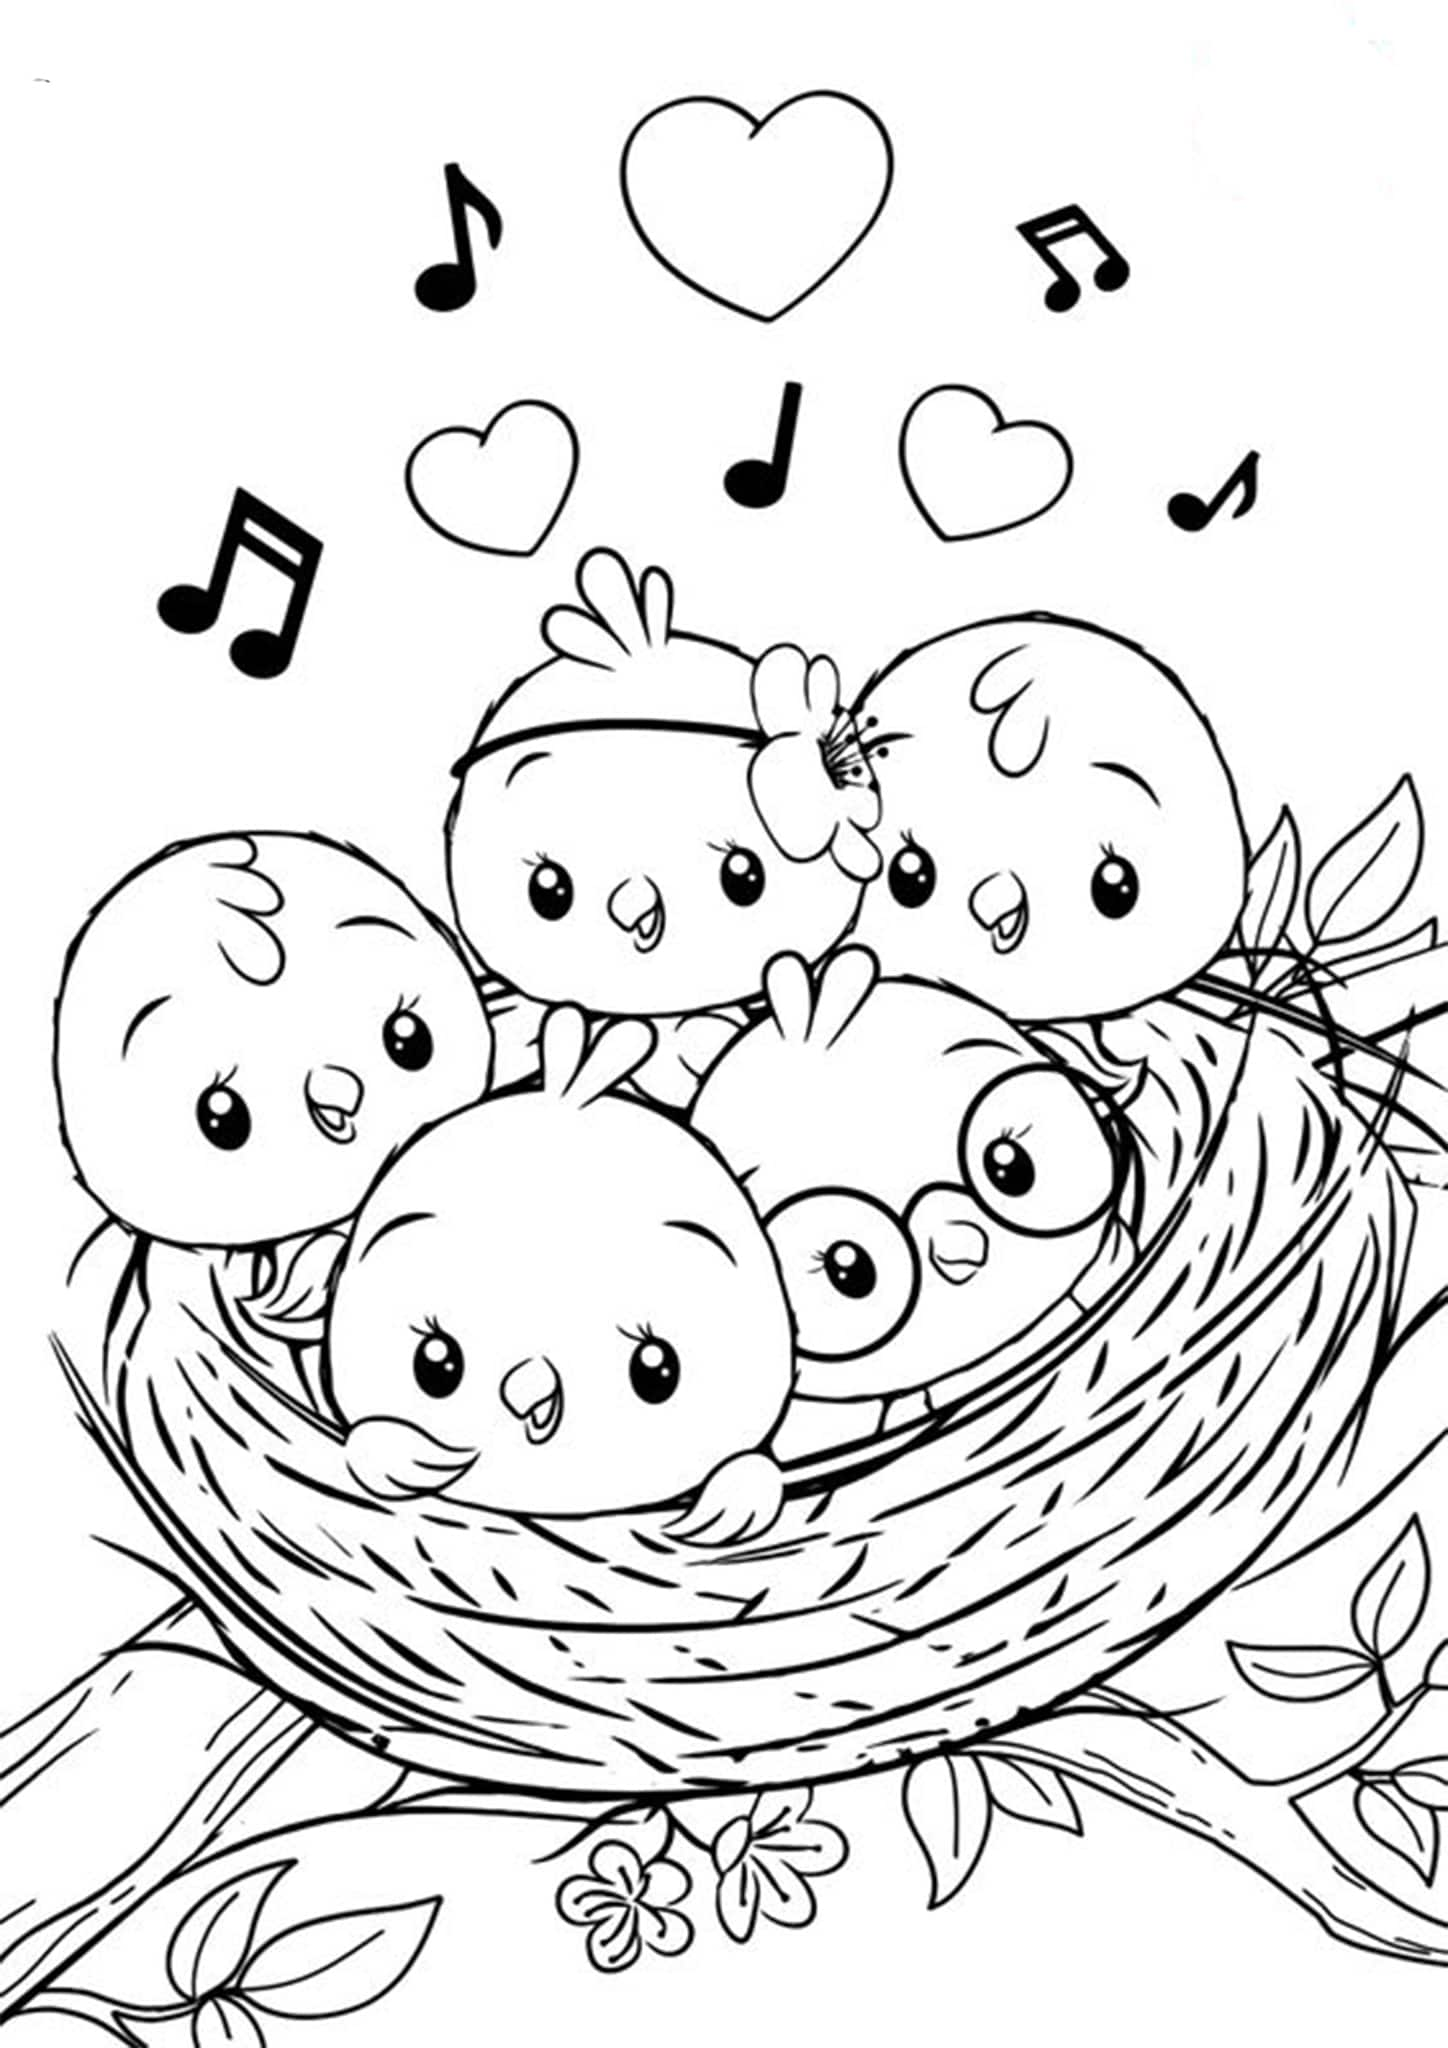 bird coloring images 17 best images about birds on pinterest coloring pages bird images coloring